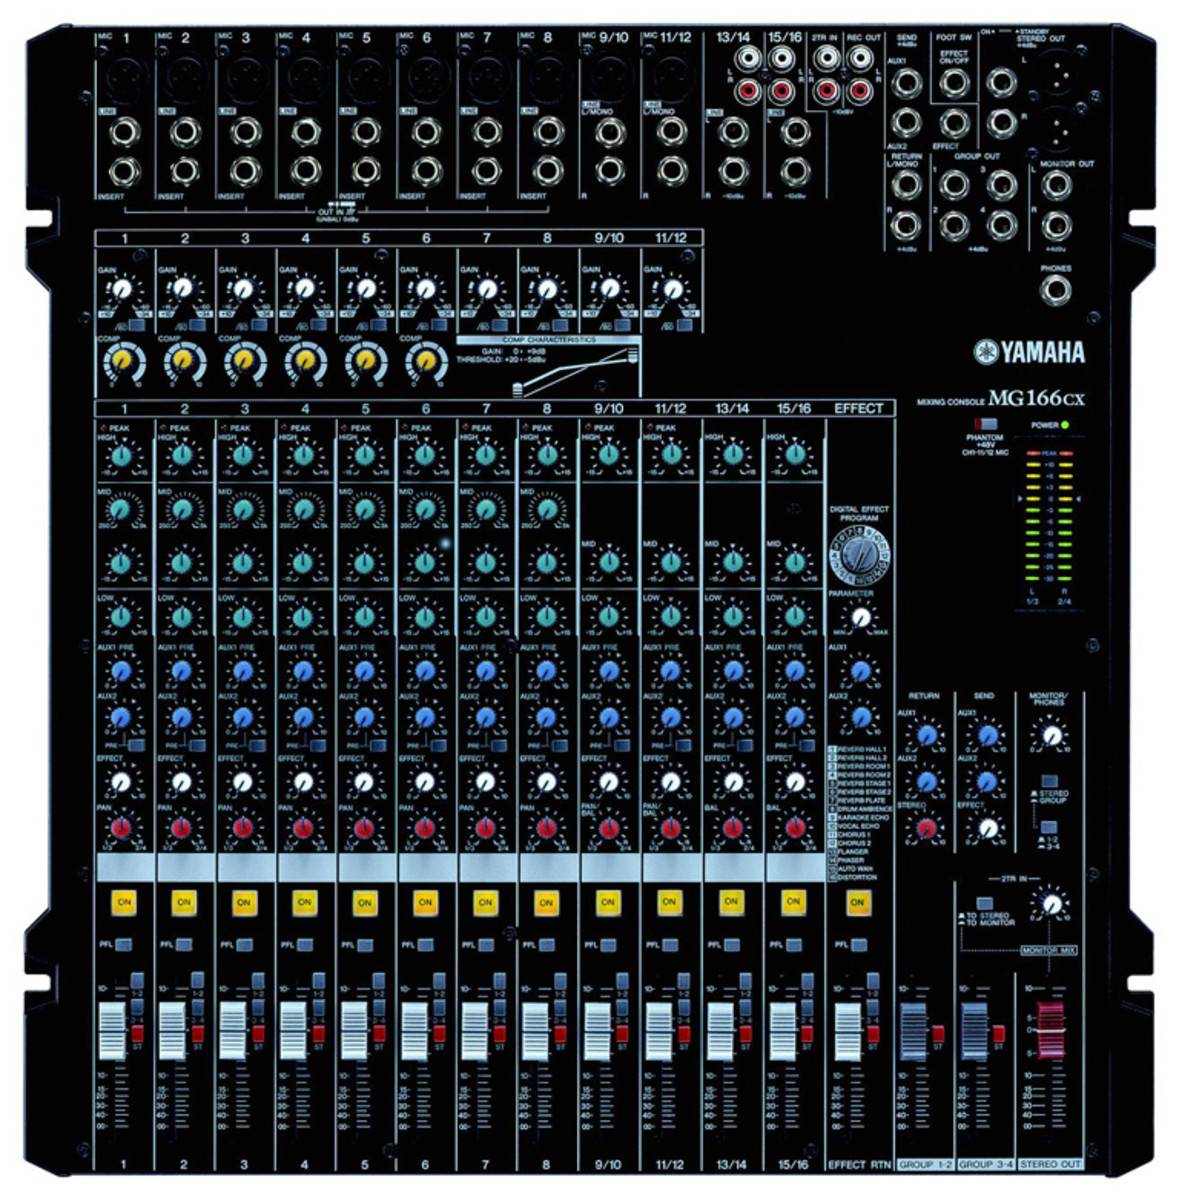 yamaha mg166cx table de mixage analogique. Black Bedroom Furniture Sets. Home Design Ideas